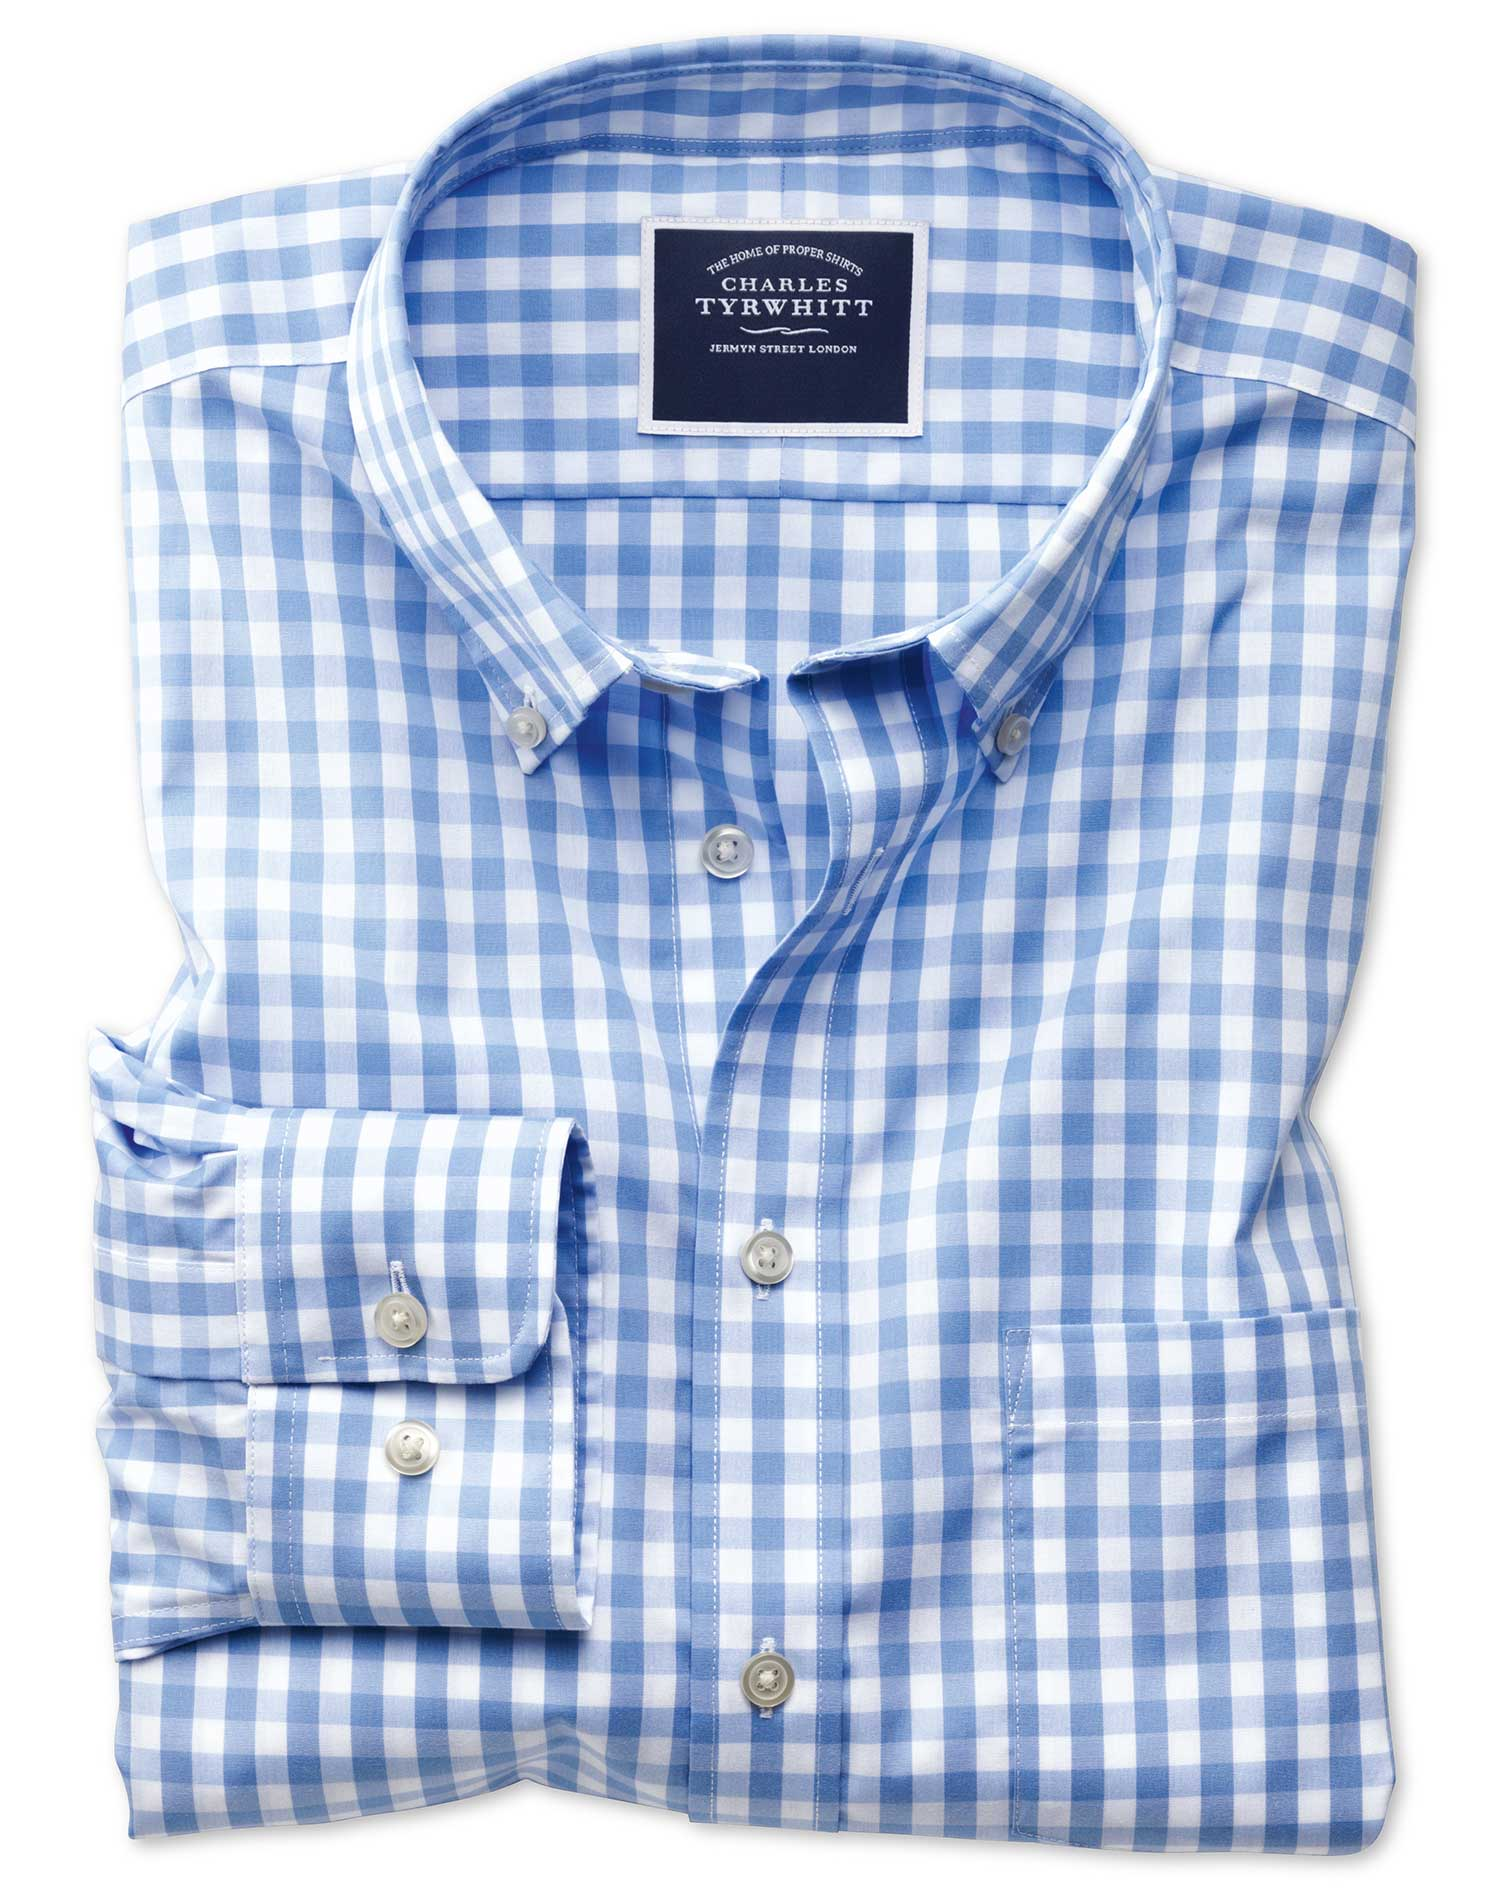 Classic Fit Button-Down Non-Iron Poplin Sky Blue Gingham Cotton Shirt Single Cuff Size Medium by Cha